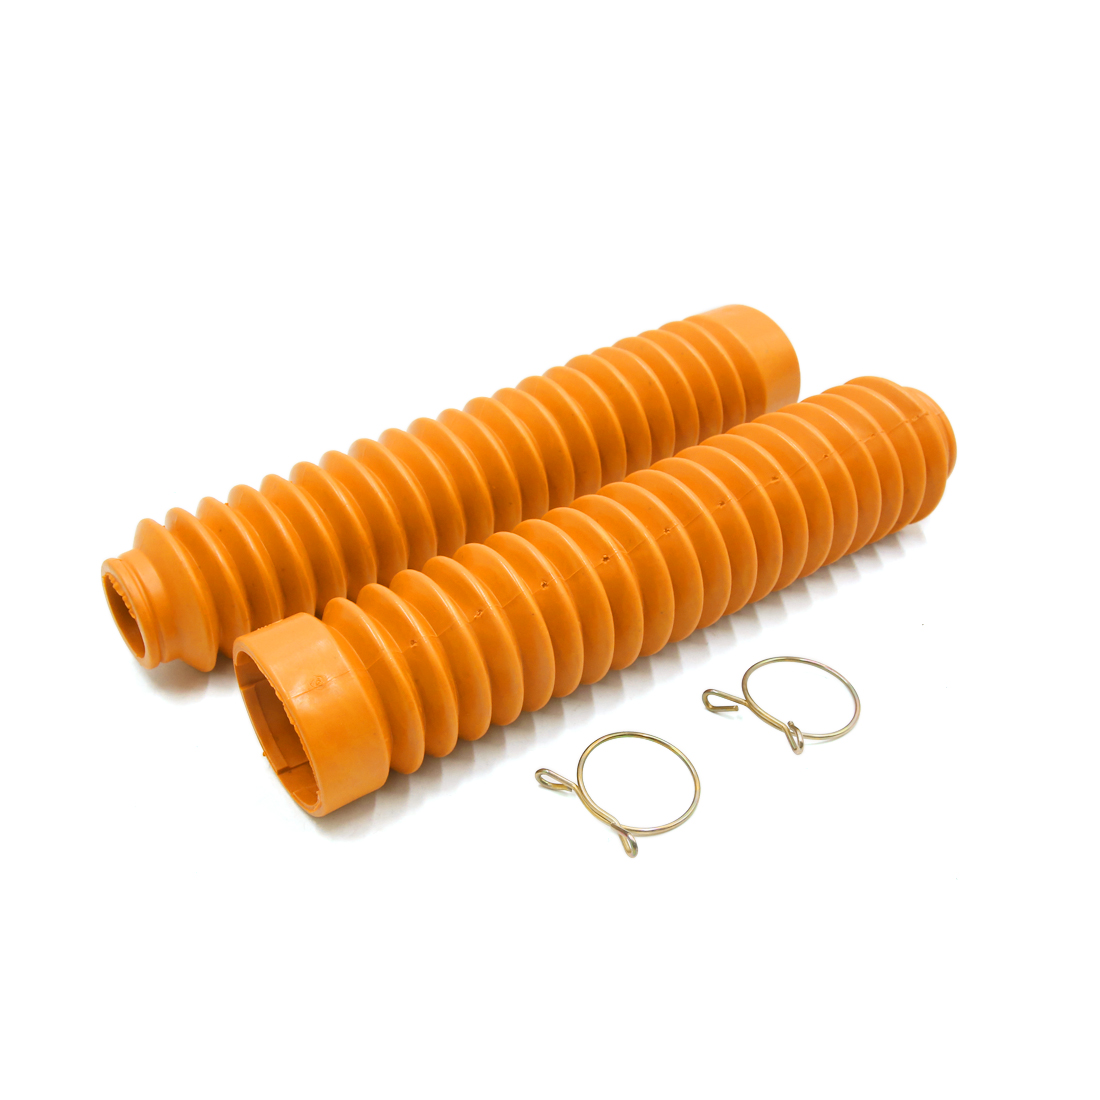 Pair Orange Rubber 26cm Length Motorcycle Front Fork Shock Absorber Dust Cover